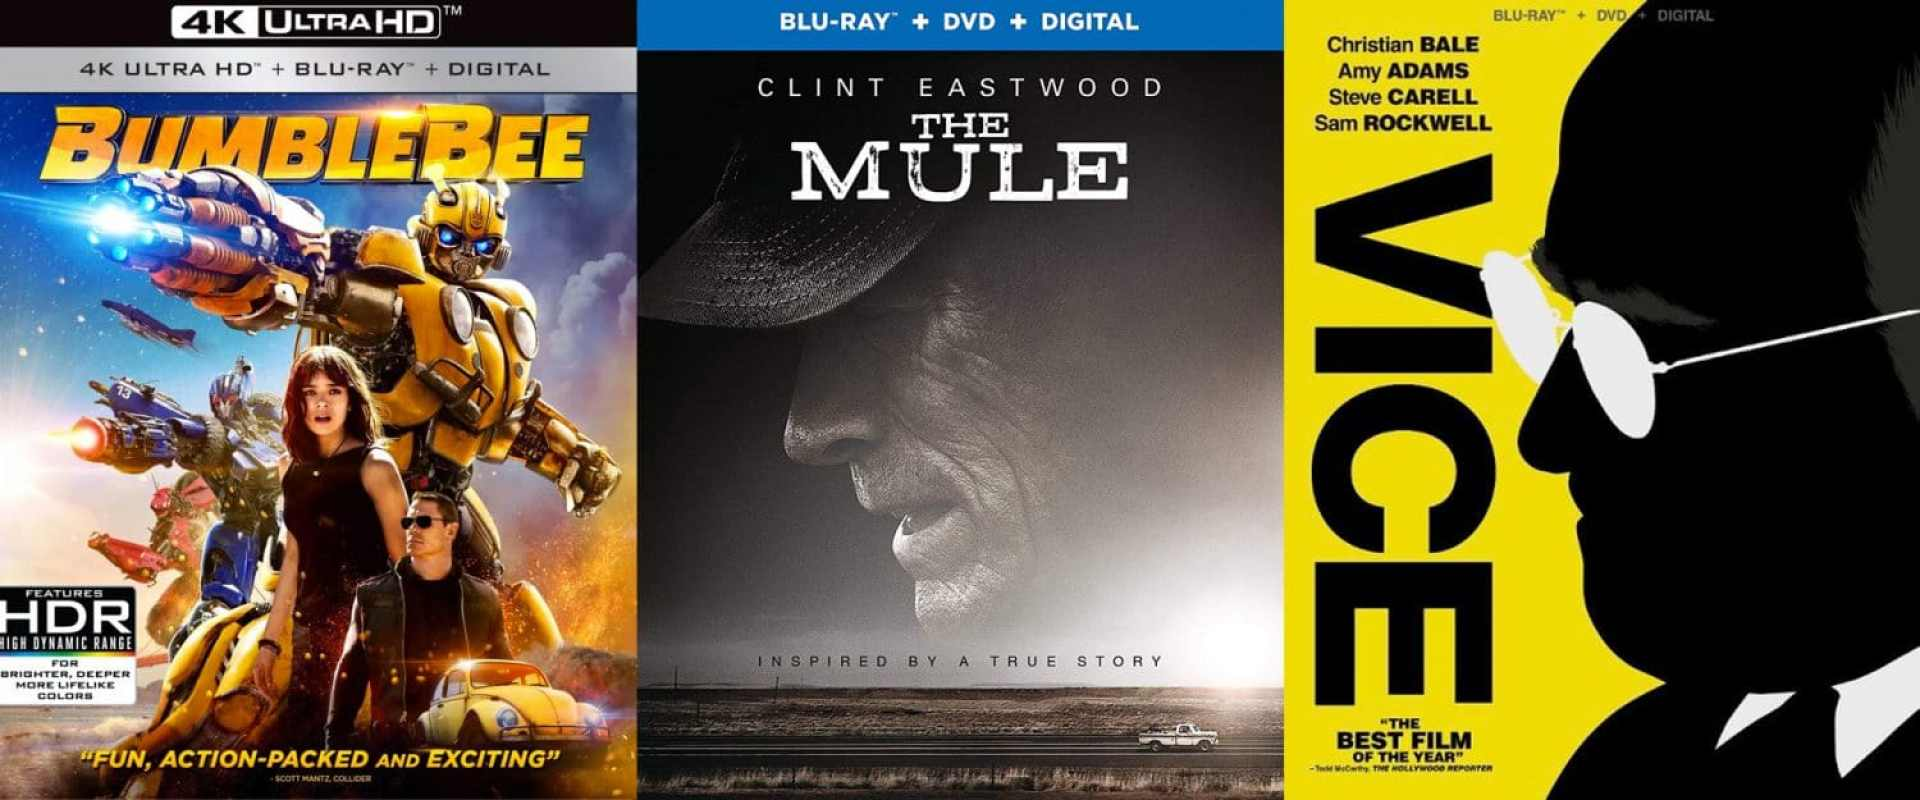 when does the mule come out on dvd